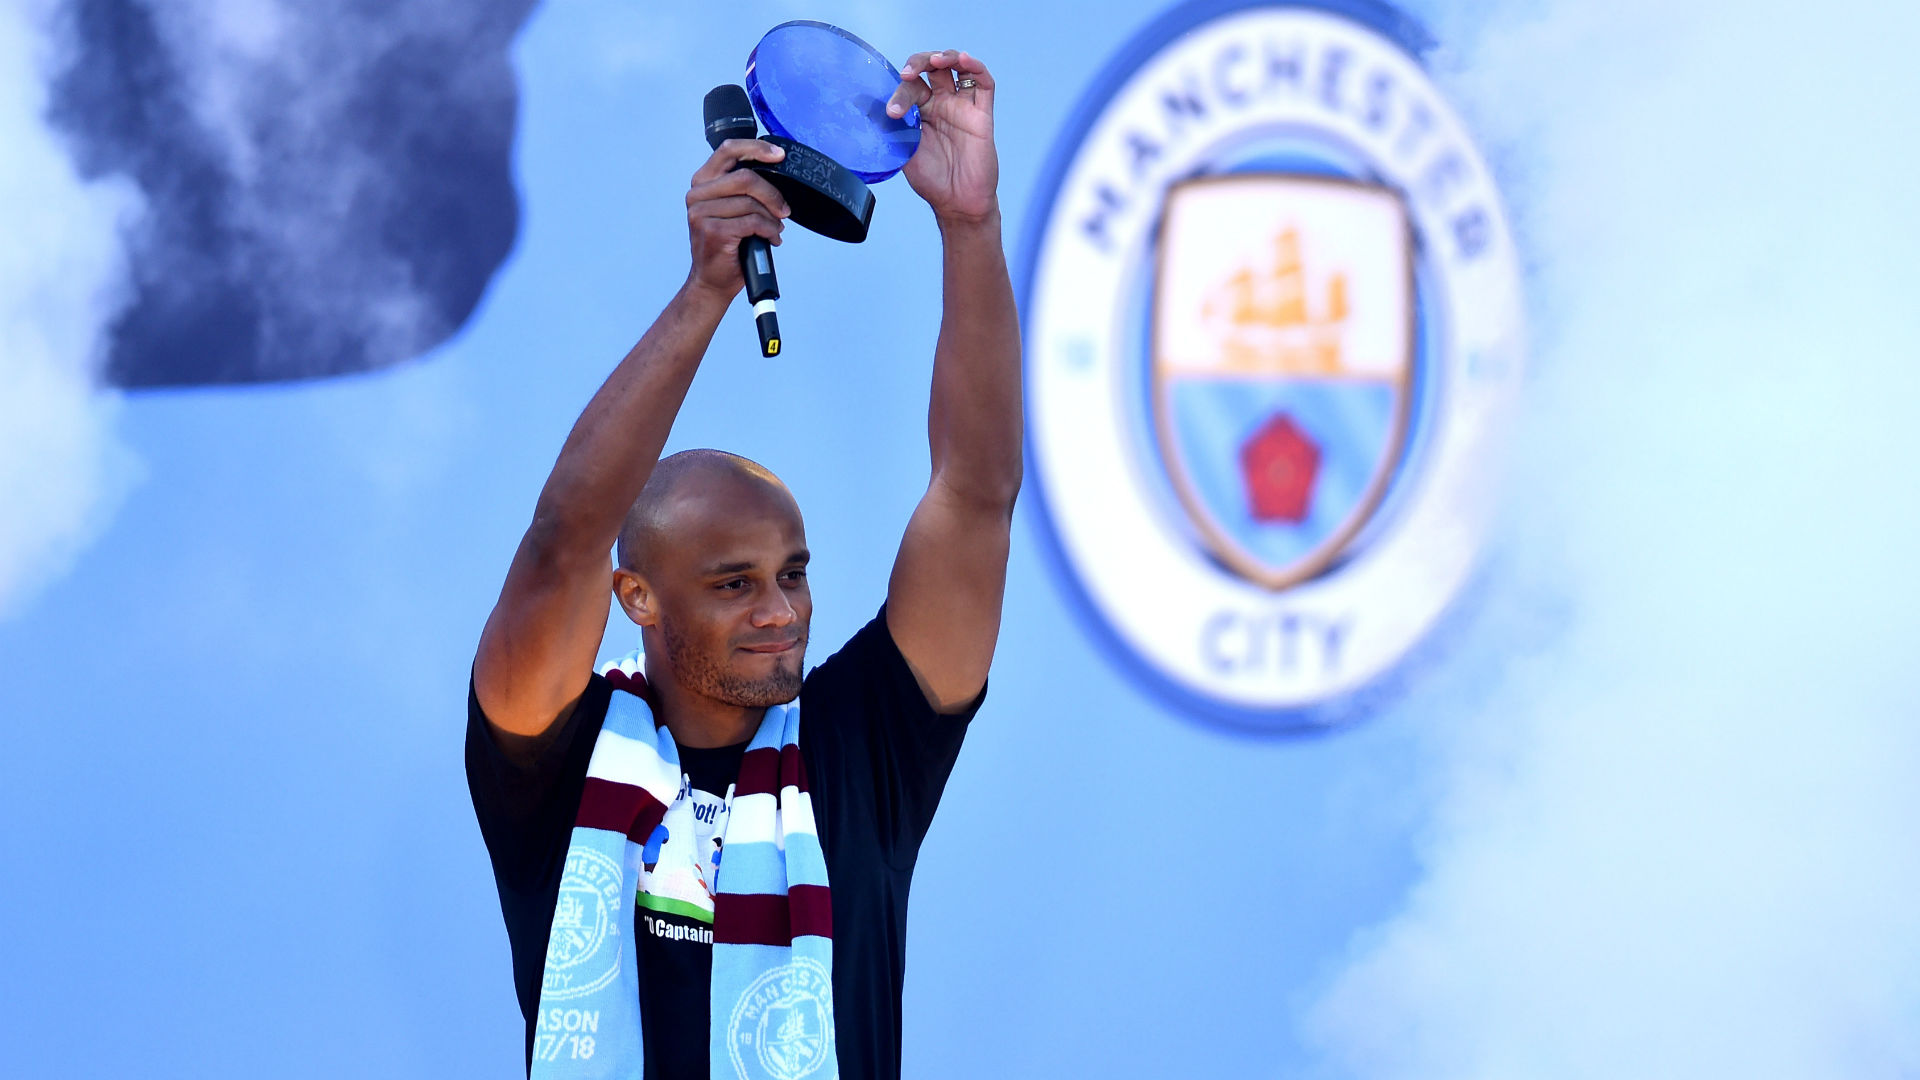 Guardiola convinced Kompany's destined to return to Manchester City